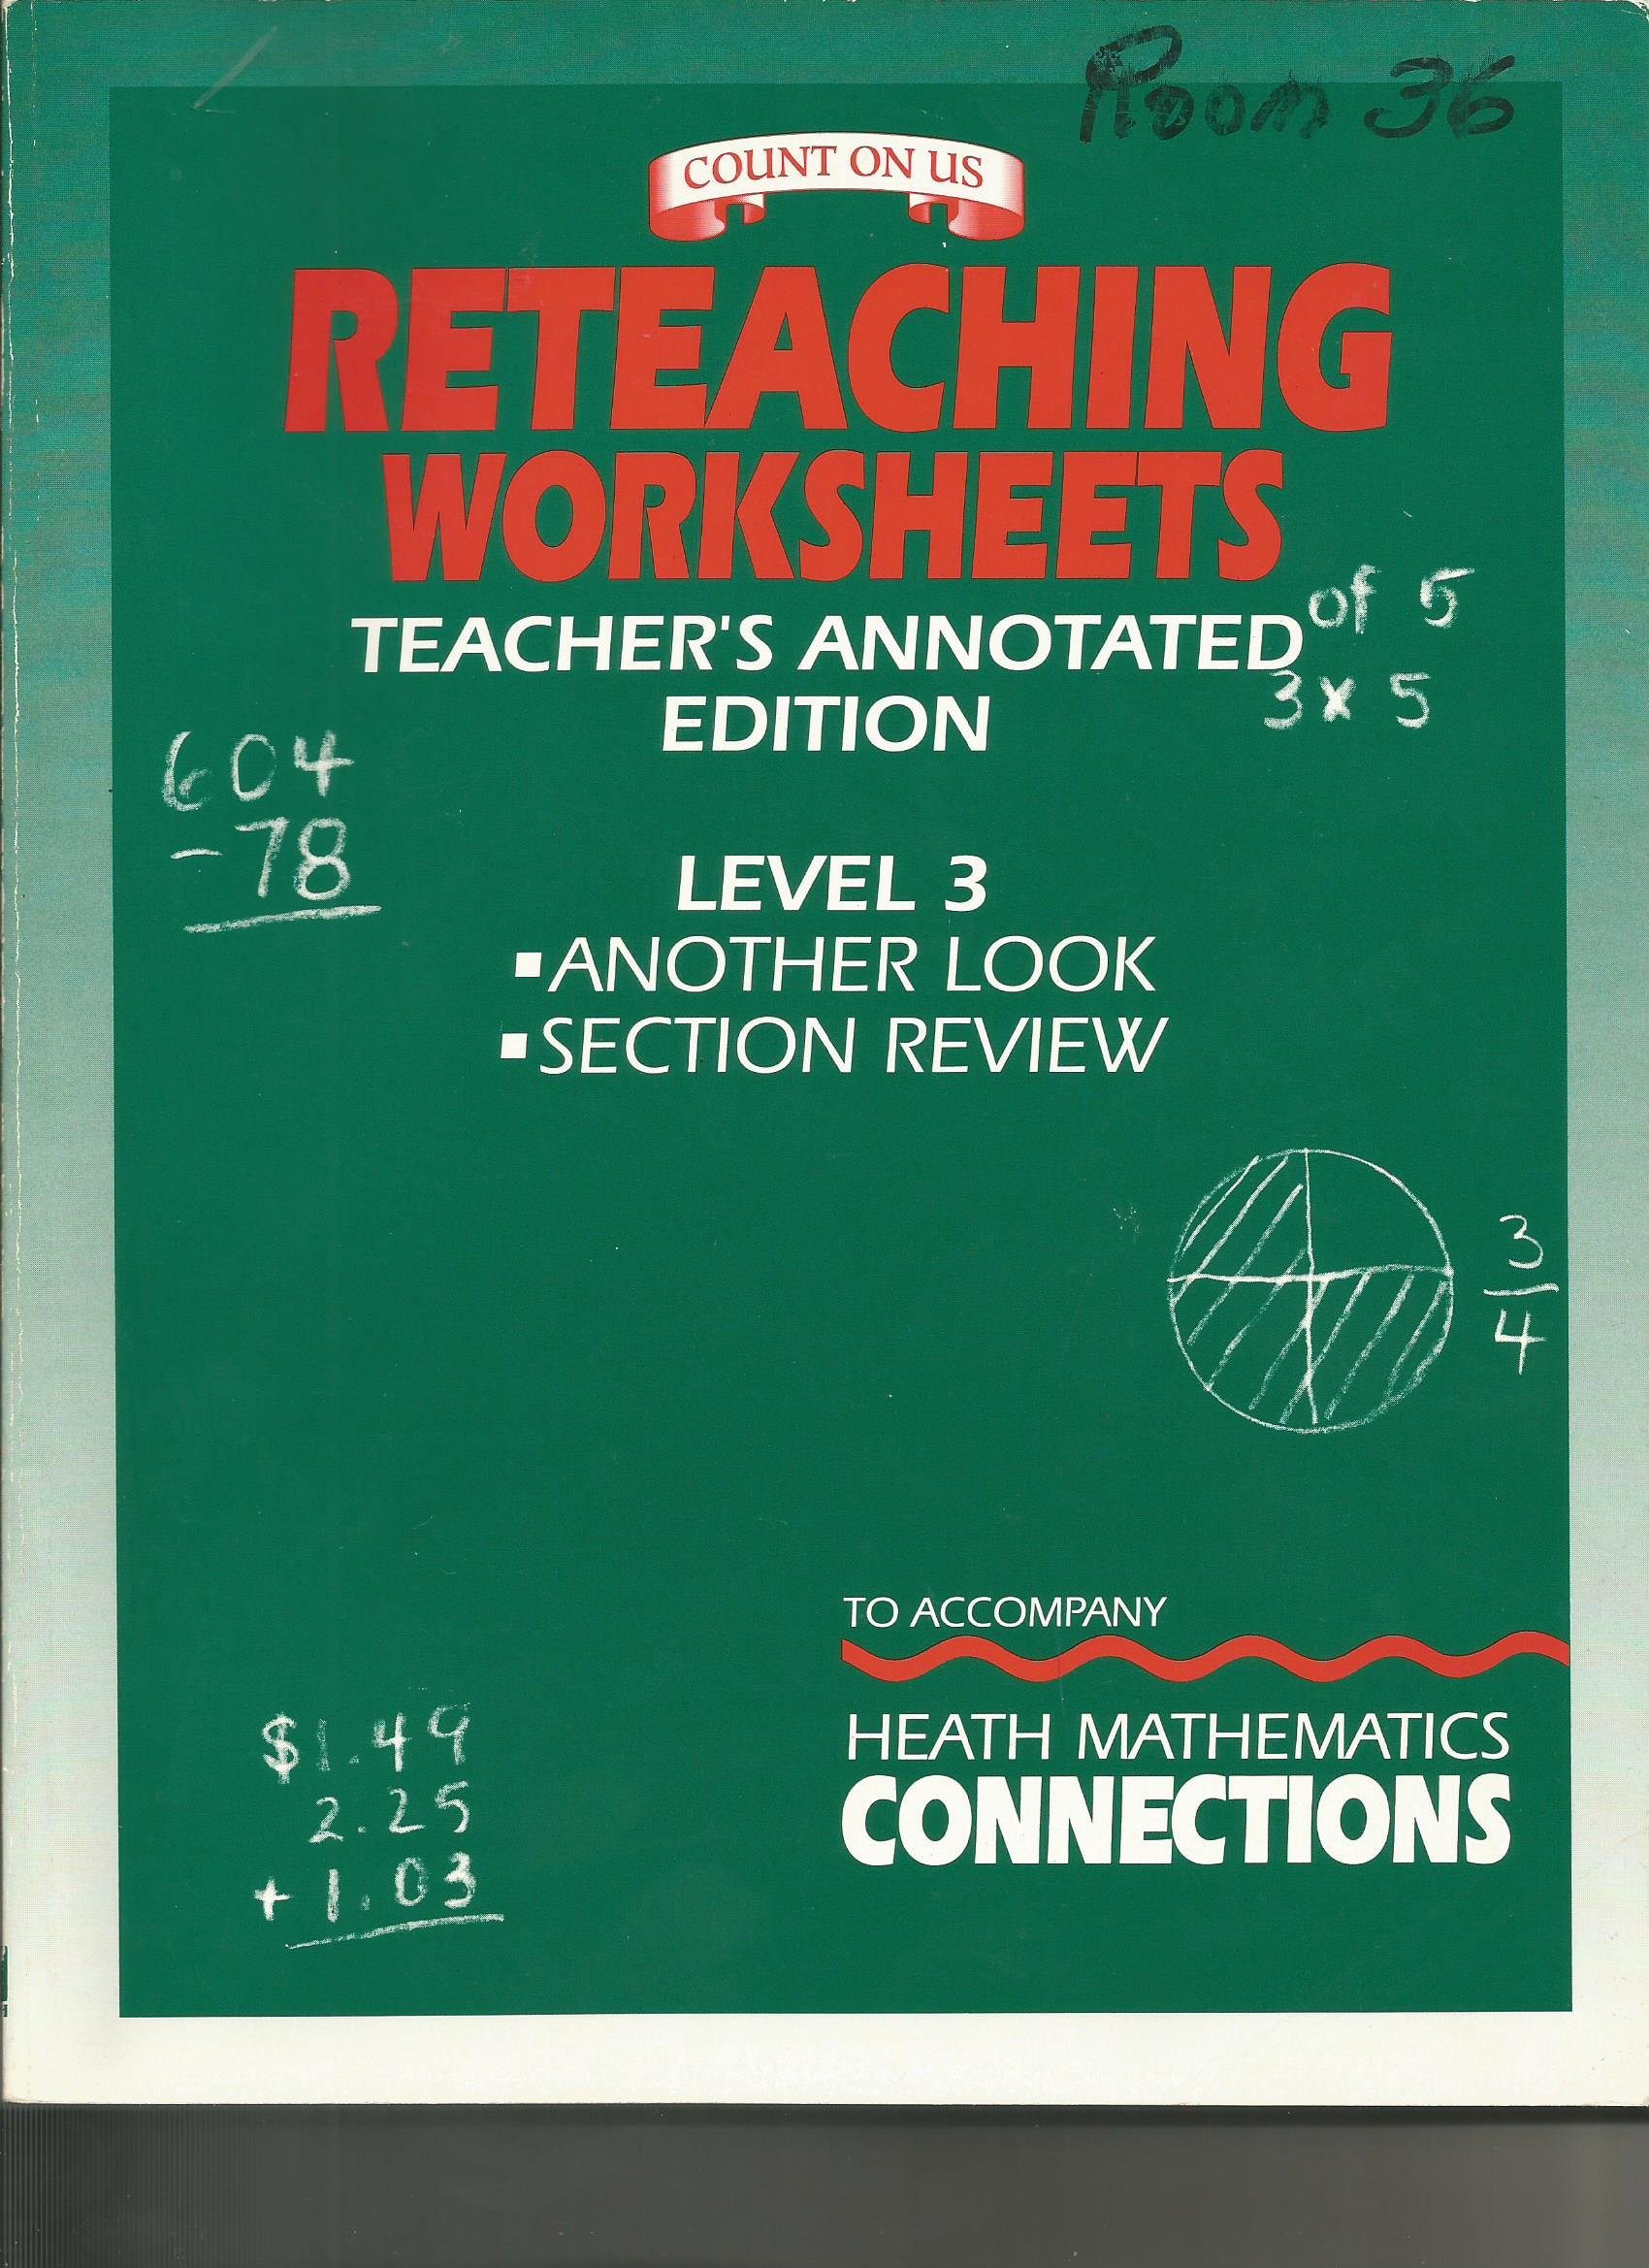 Worksheets D.c Heath And Company Worksheets reteaching worksheets teachers annotated edition another look section review to accompany heath mathematics connections level